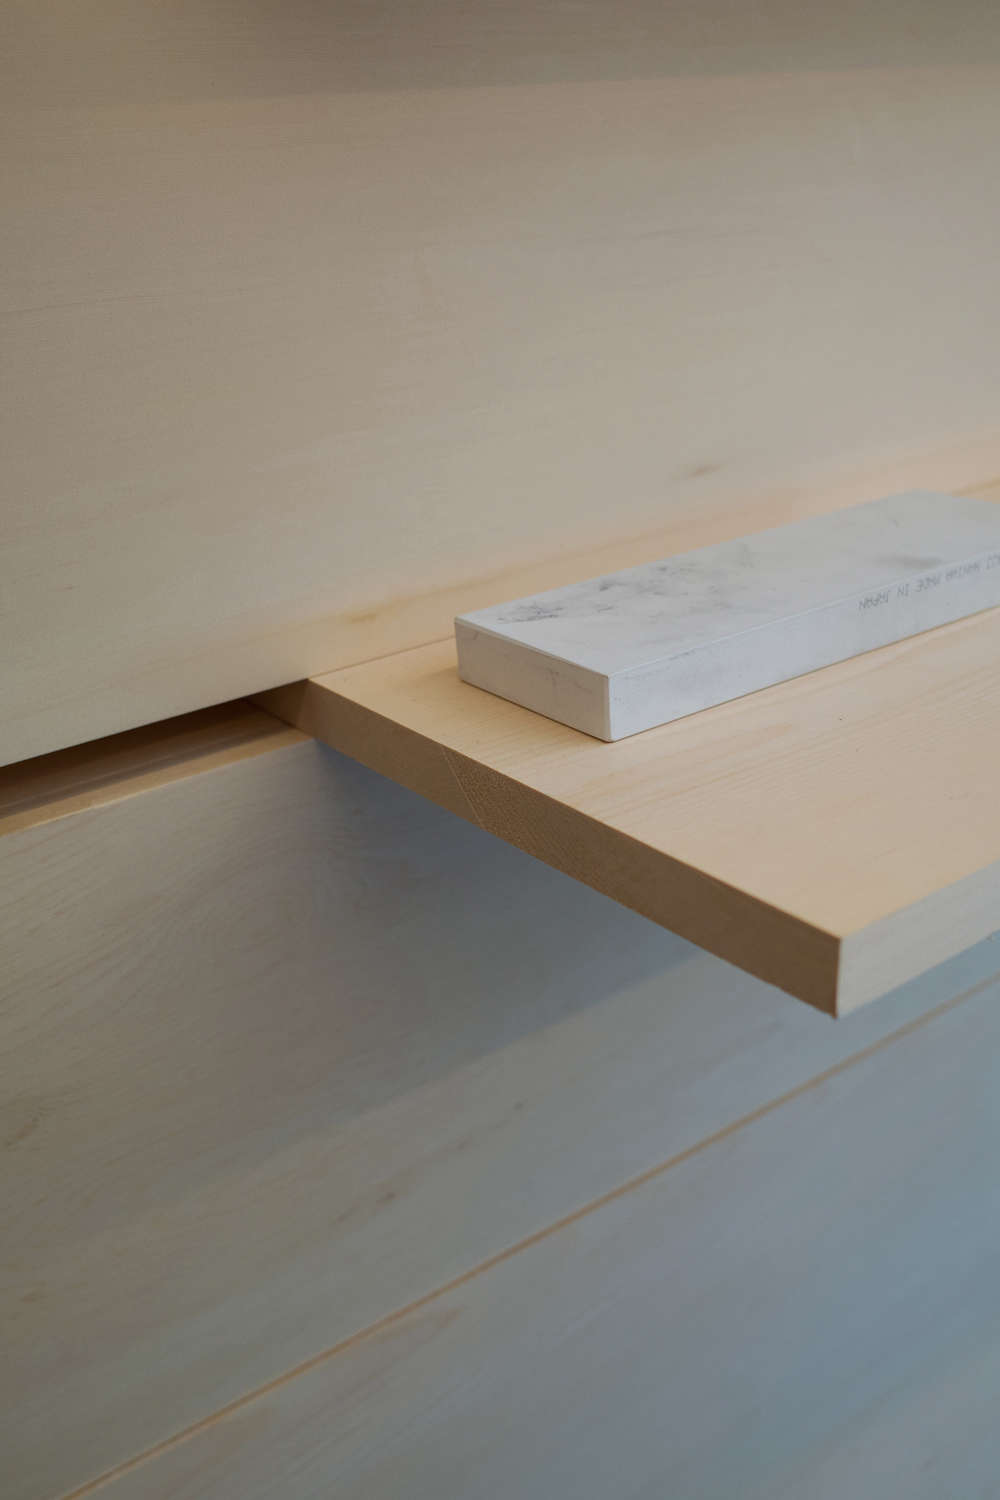 Shelf Detail in Ai and Om Knife Shop by Scott and Scott Architects